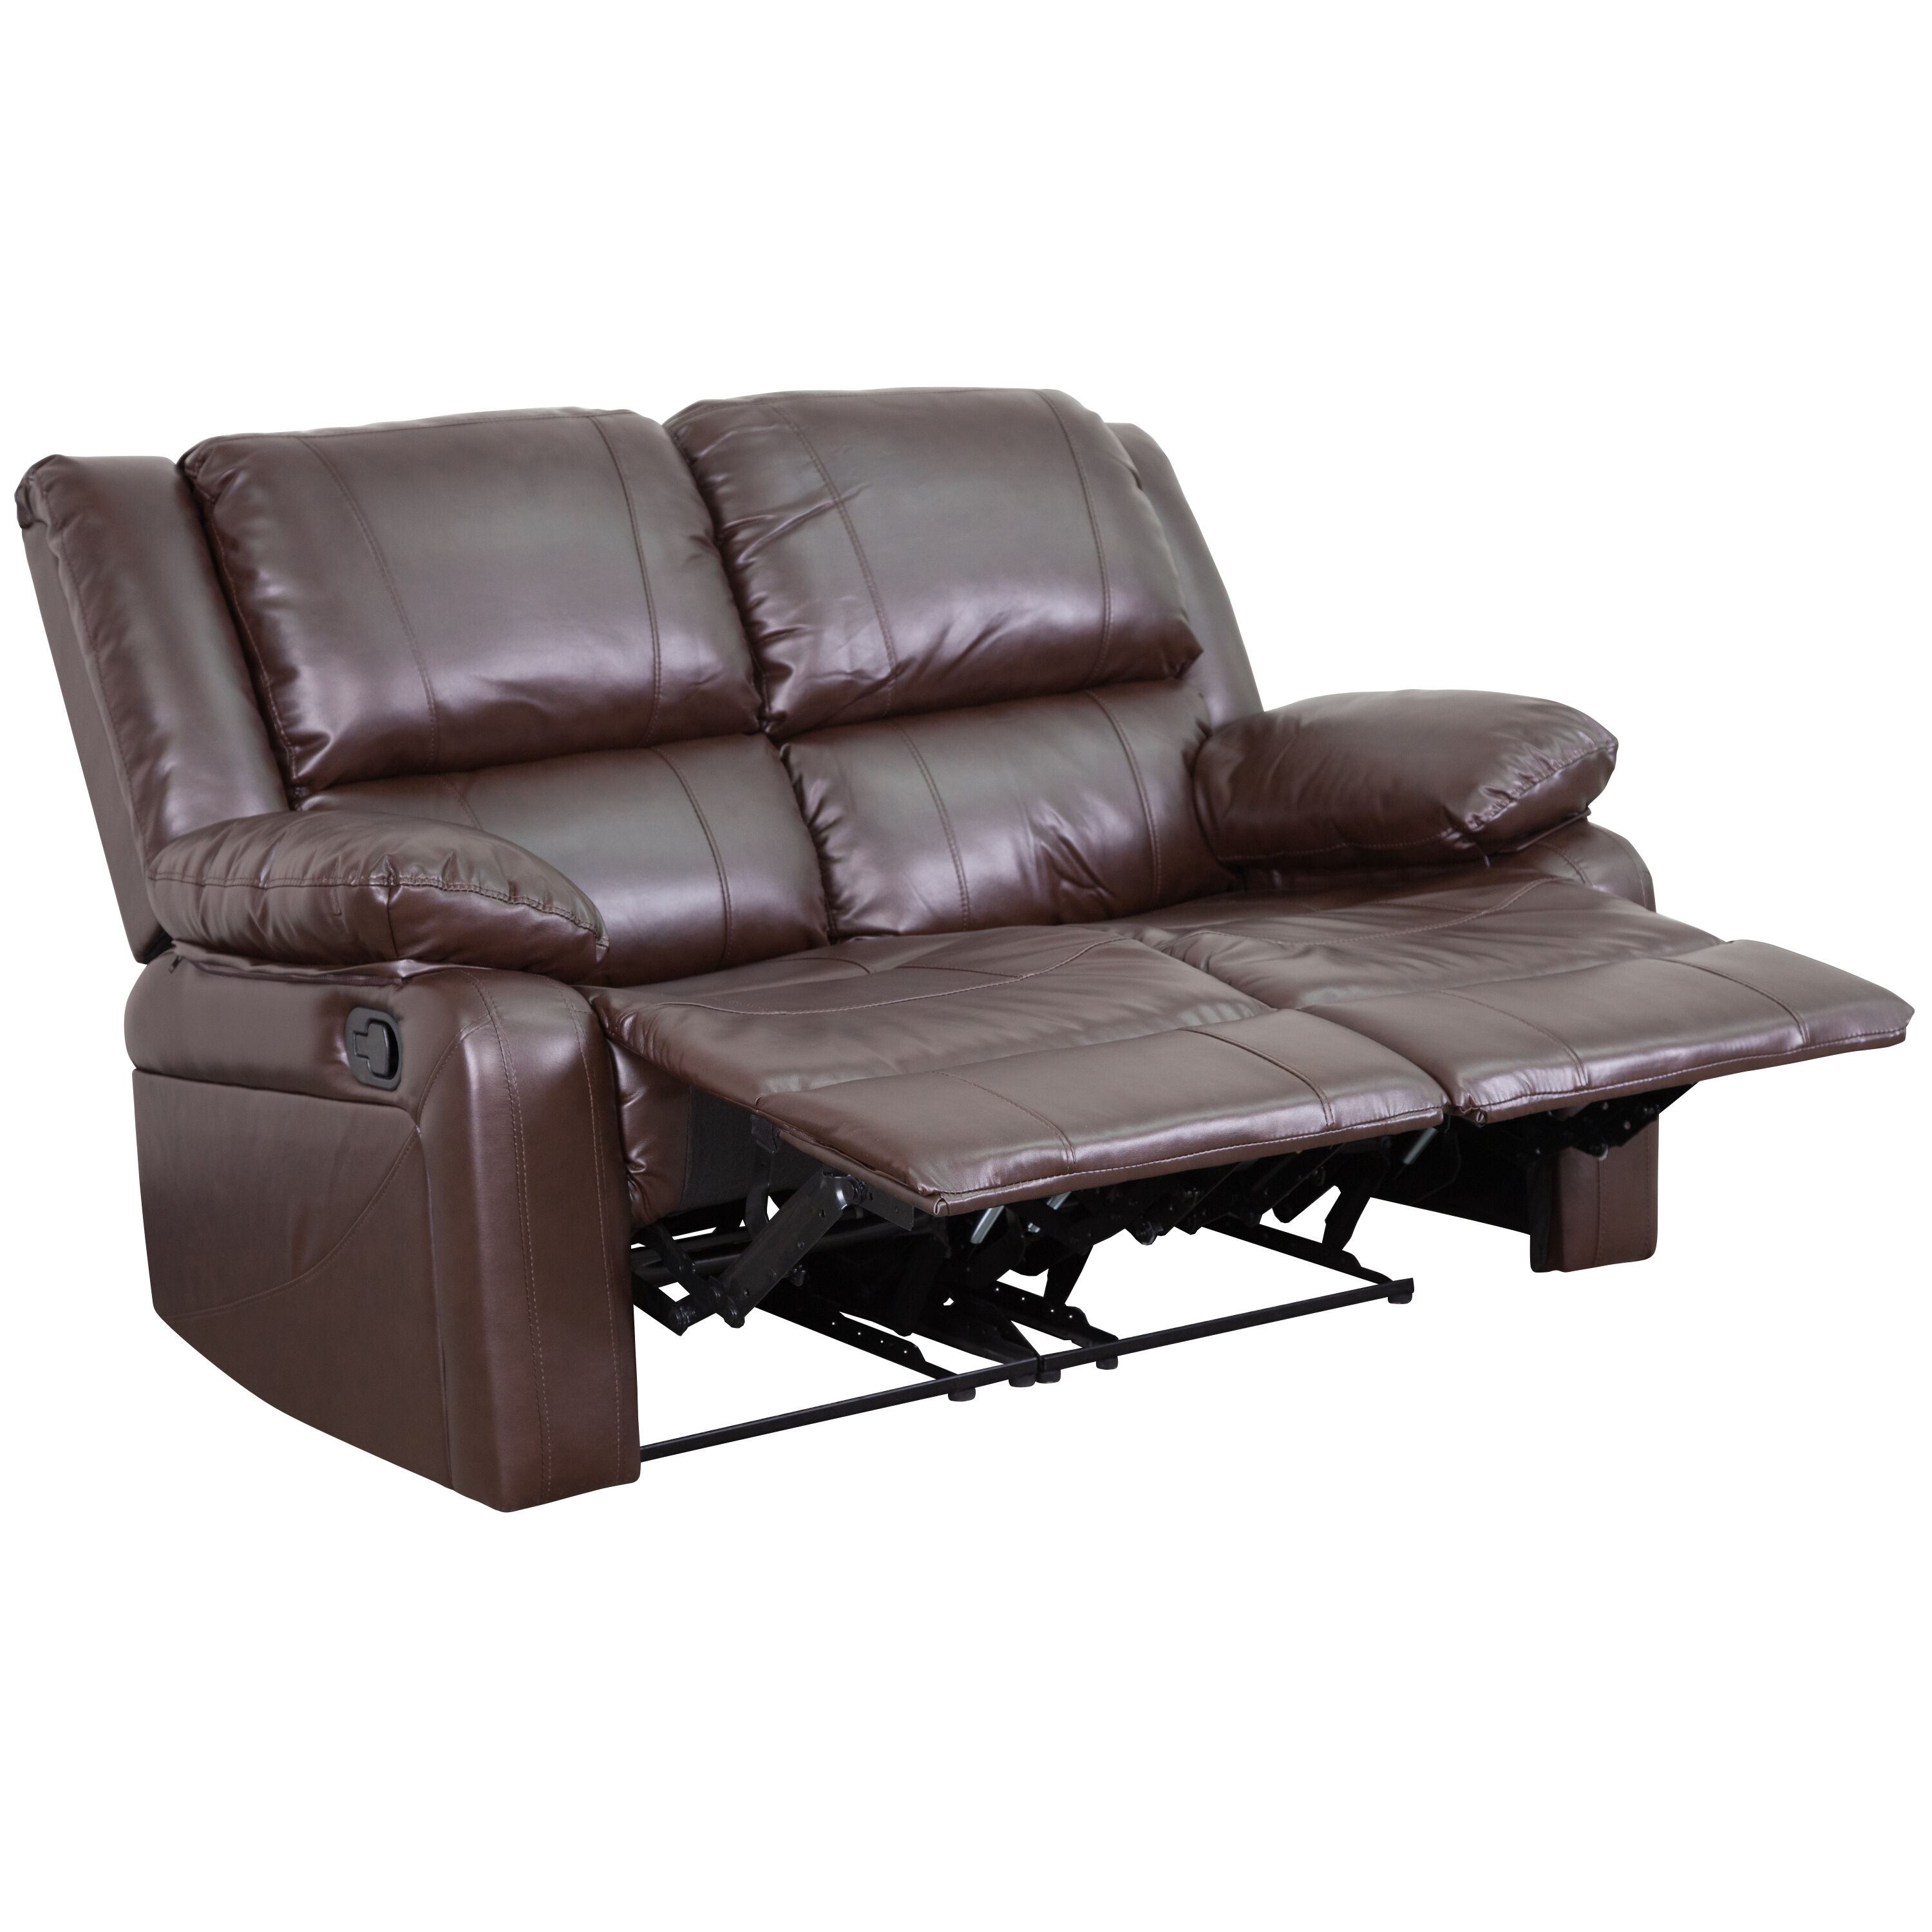 Genial ... Our Harmony Series Brown Leather Loveseat With Two Built In Recliners  Is On Sale Now ...